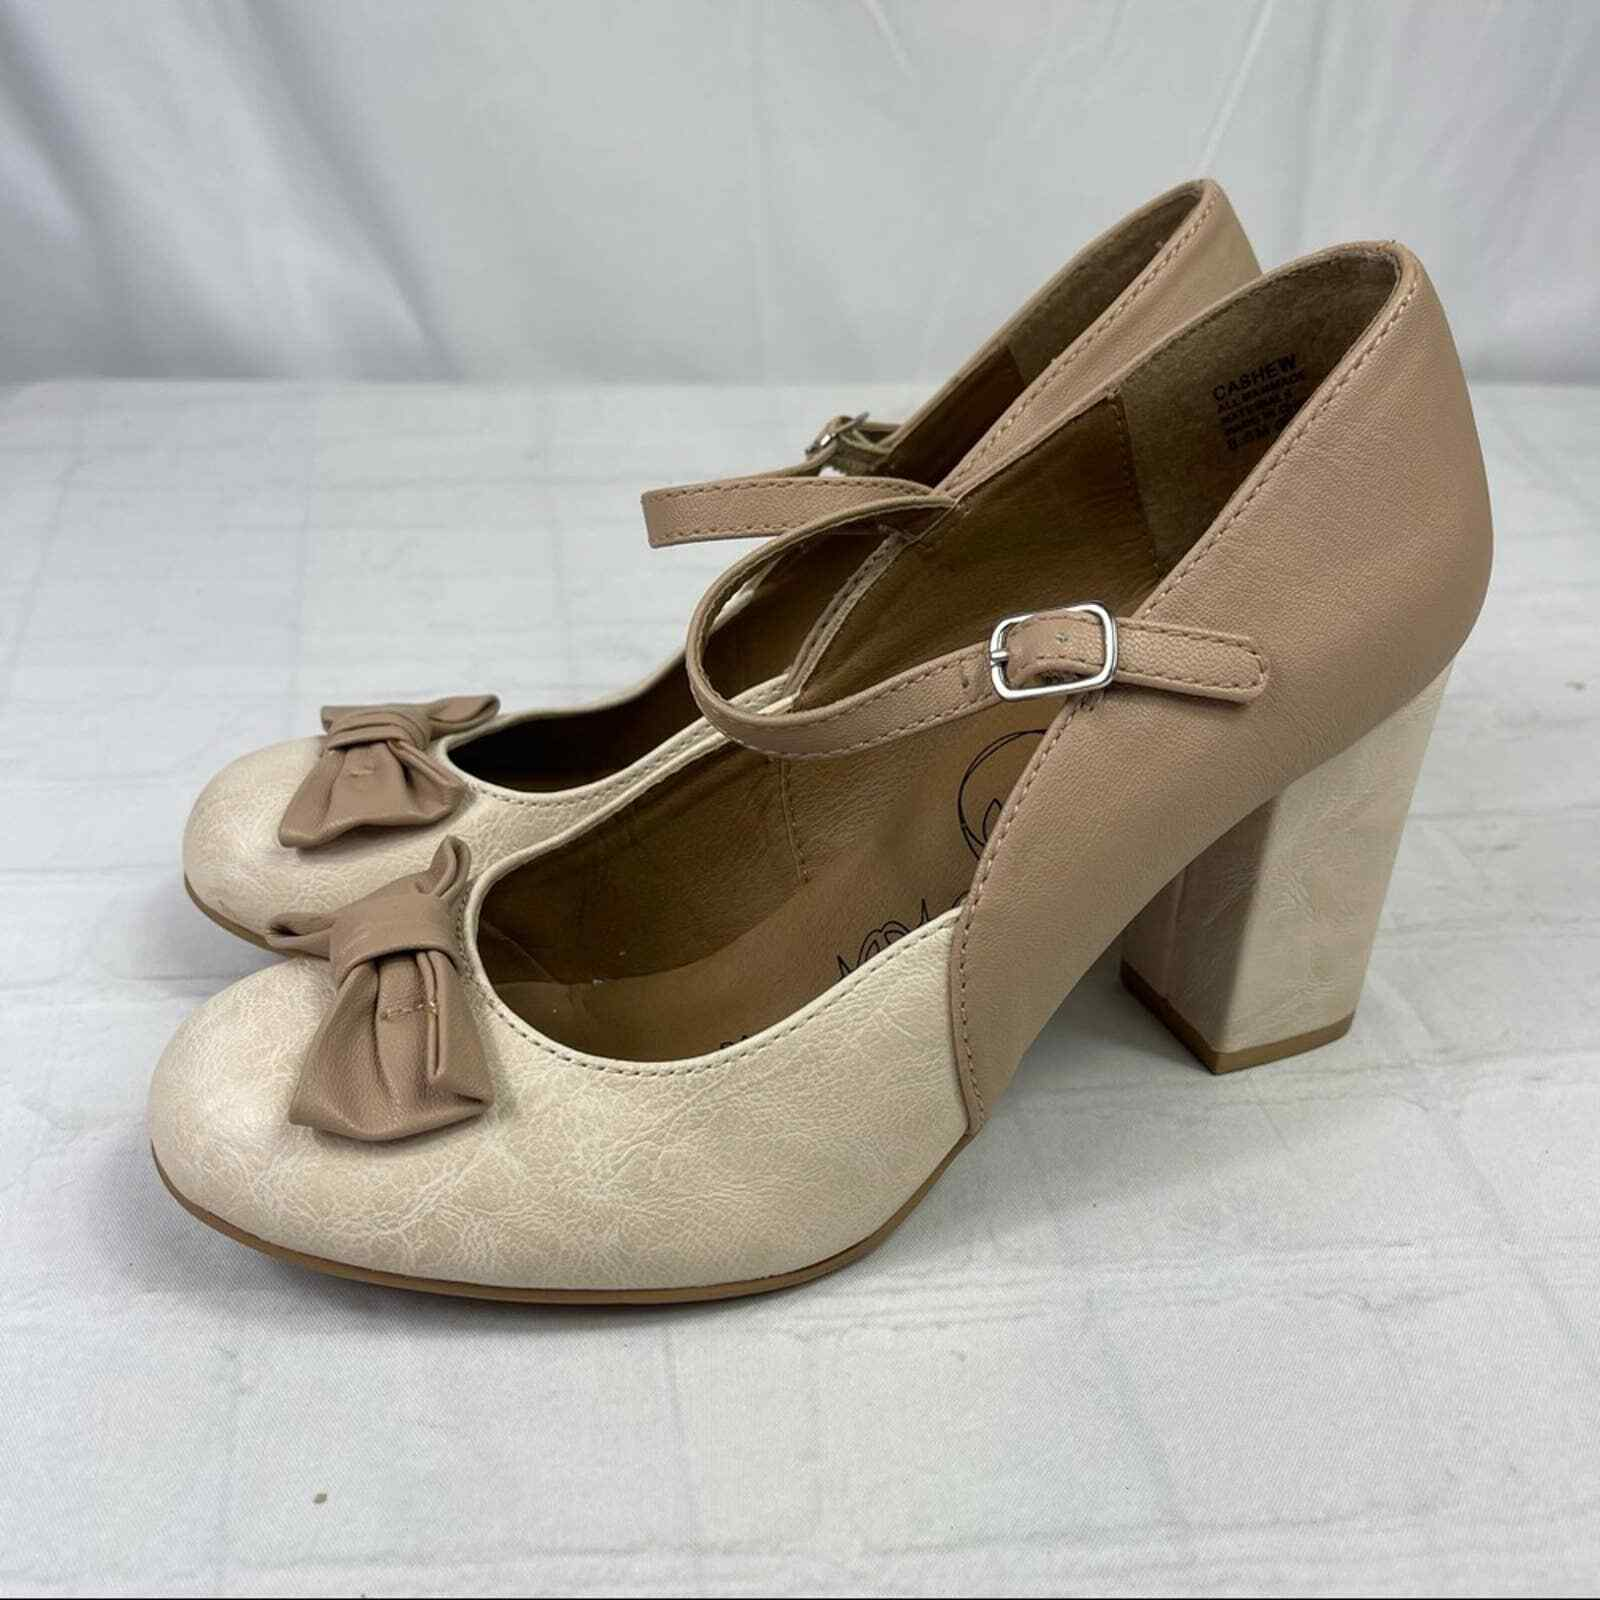 Jelly pop nude bow Mary Jane pumps - image 1